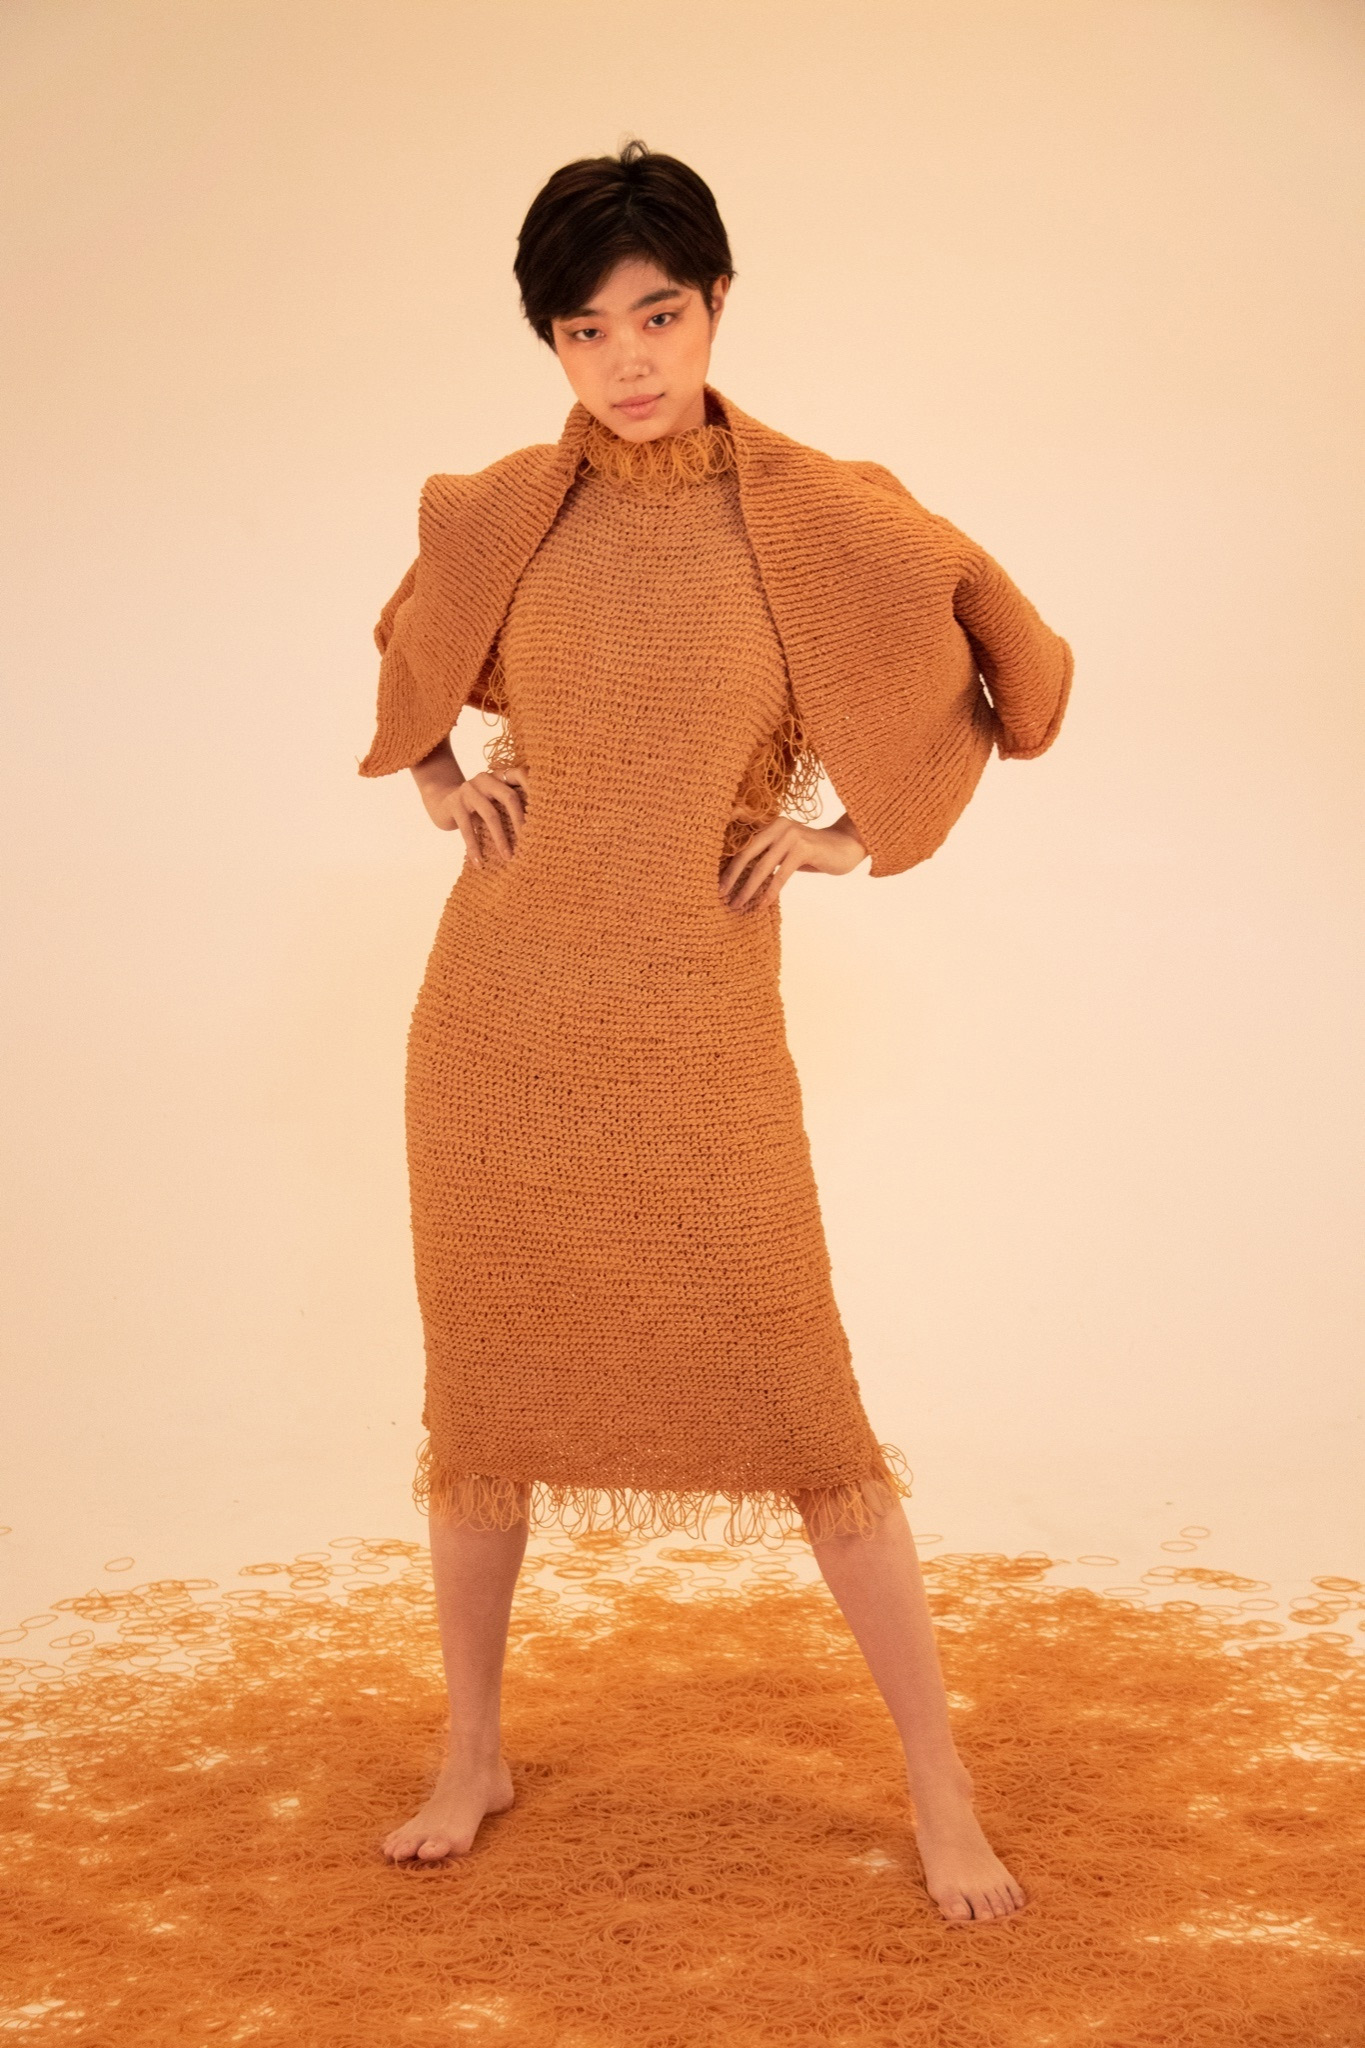 Fringed Orange Apparel Knit Entirely From Rubber Bands by Rie Sakamoto